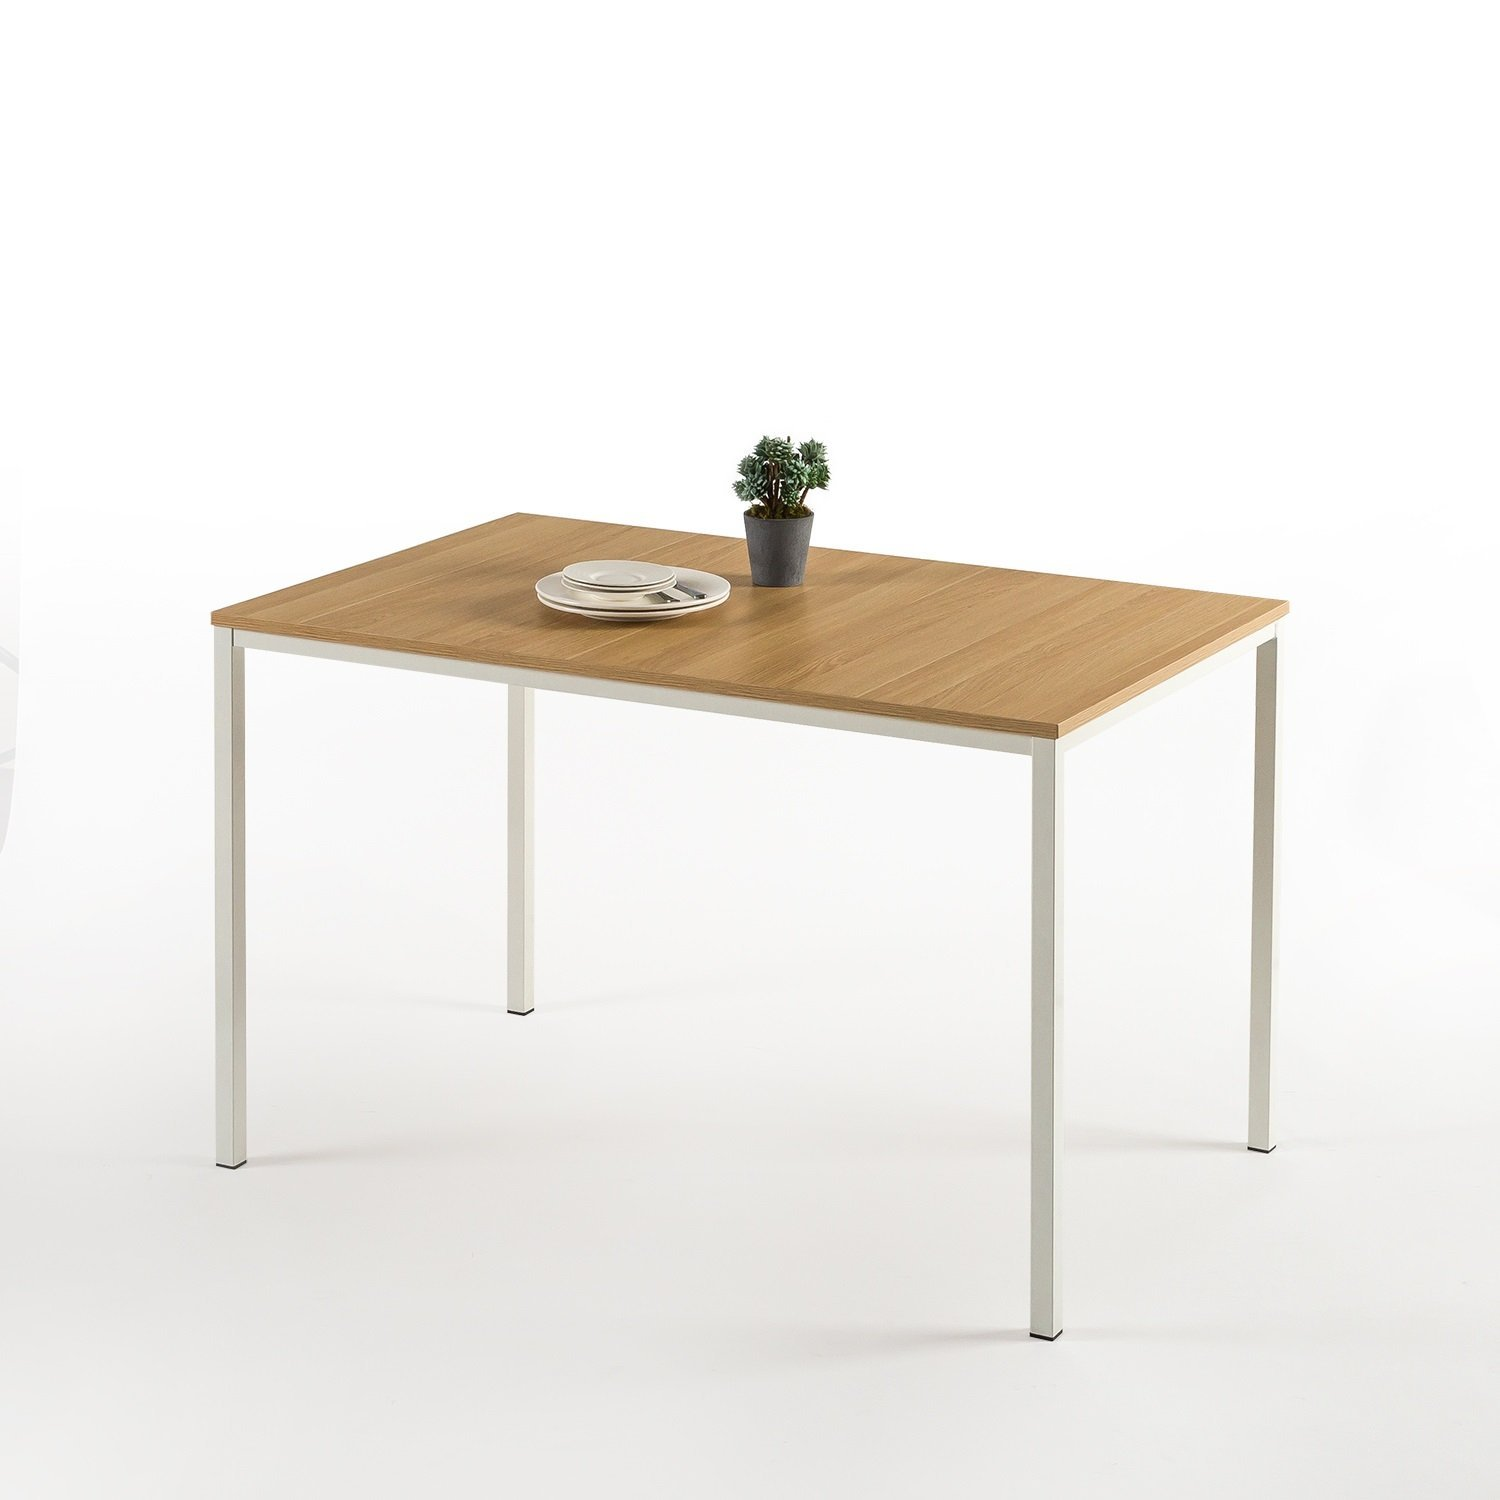 Zinus Dessa Modern Studio Collection Soho Dining Table / Office Desk / Computer Desk / Table Only, White